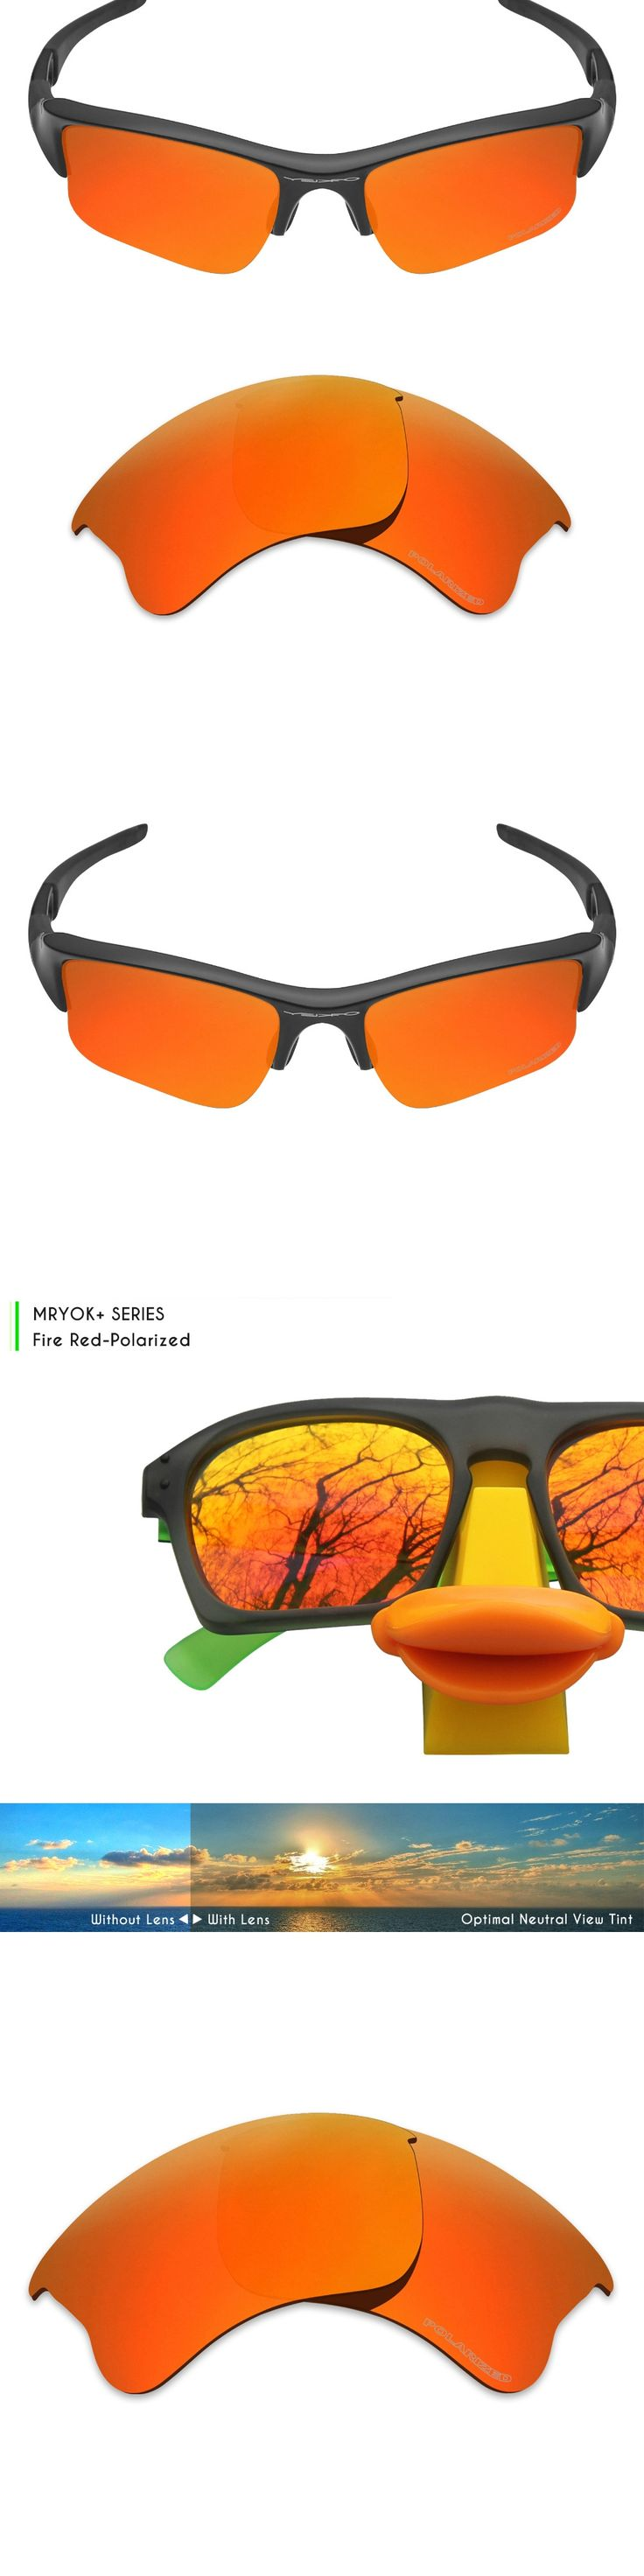 Mryok+ POLARIZED Resist SeaWater Replacement Lenses for Oakley Flak Jacket XLJ Sunglasses Fire Red